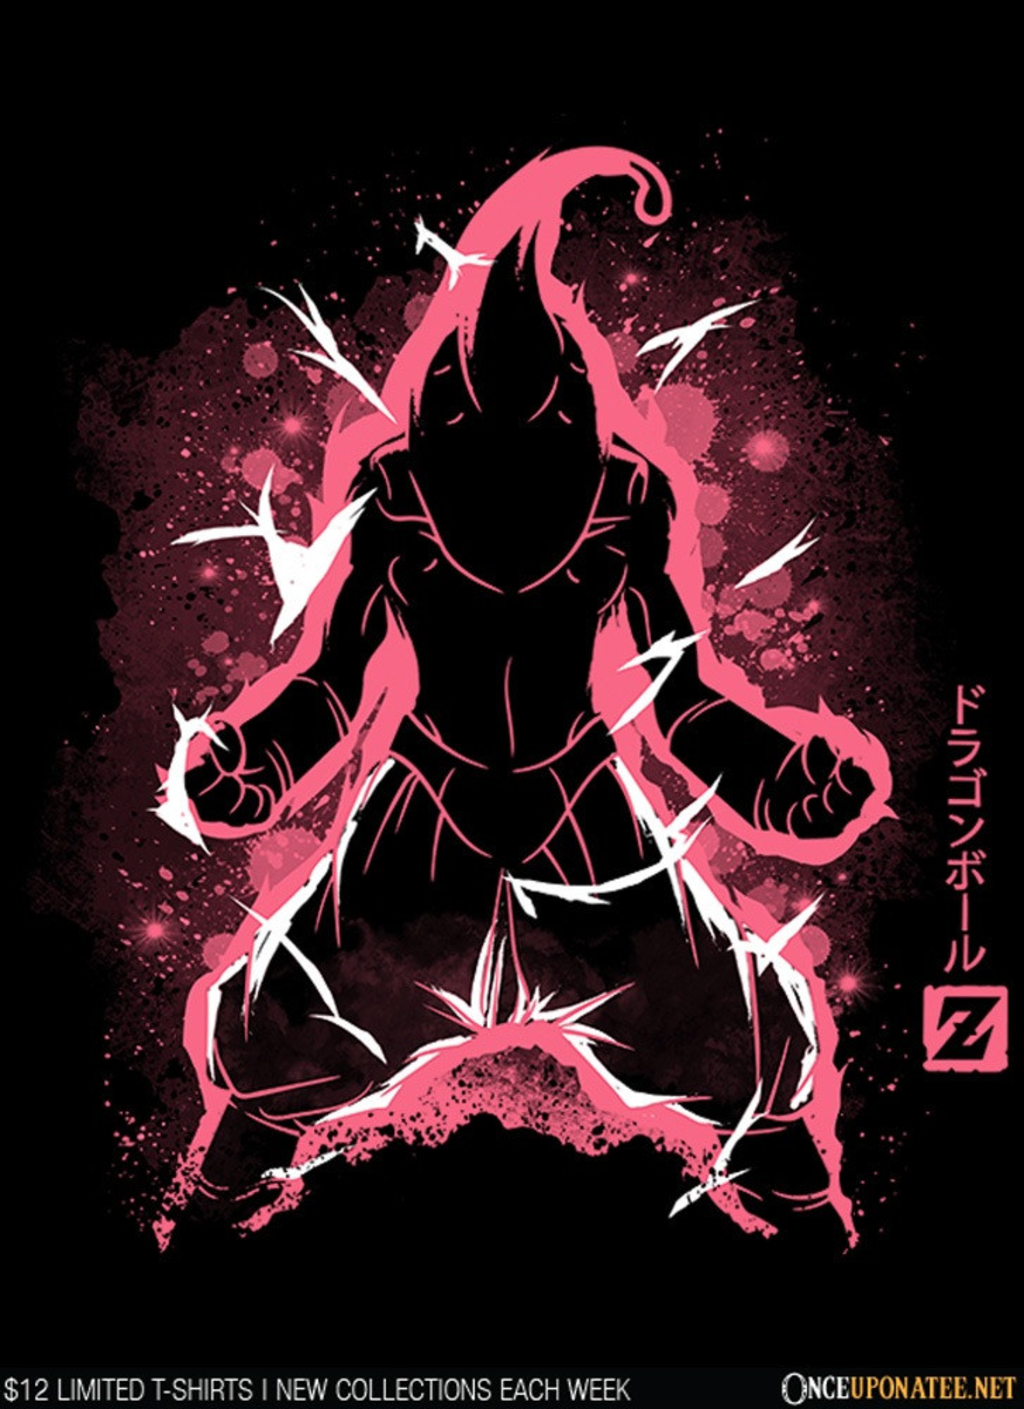 Once Upon a Tee: The Majin